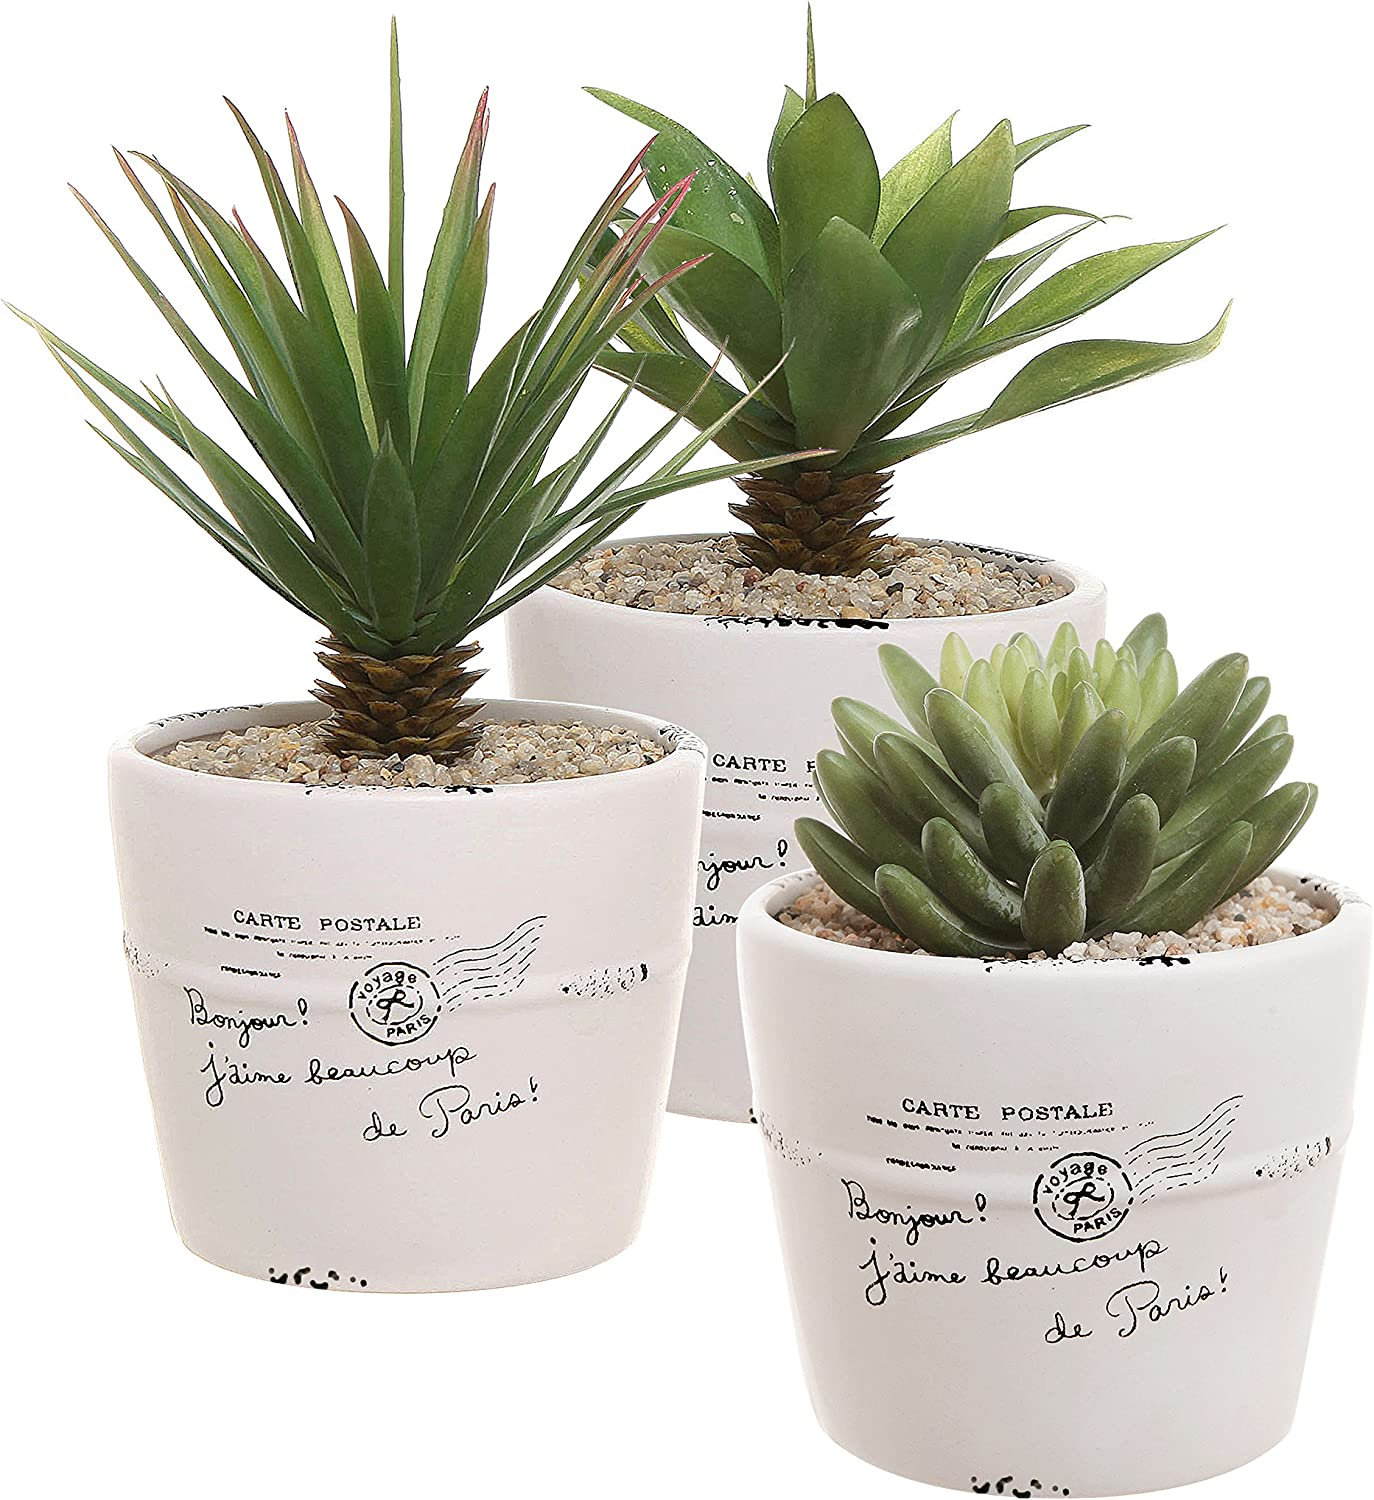 4 inch Rustic White Ceramic French Parisian Postcard Tabletop Succulent Herb Planter Pots Set of 3